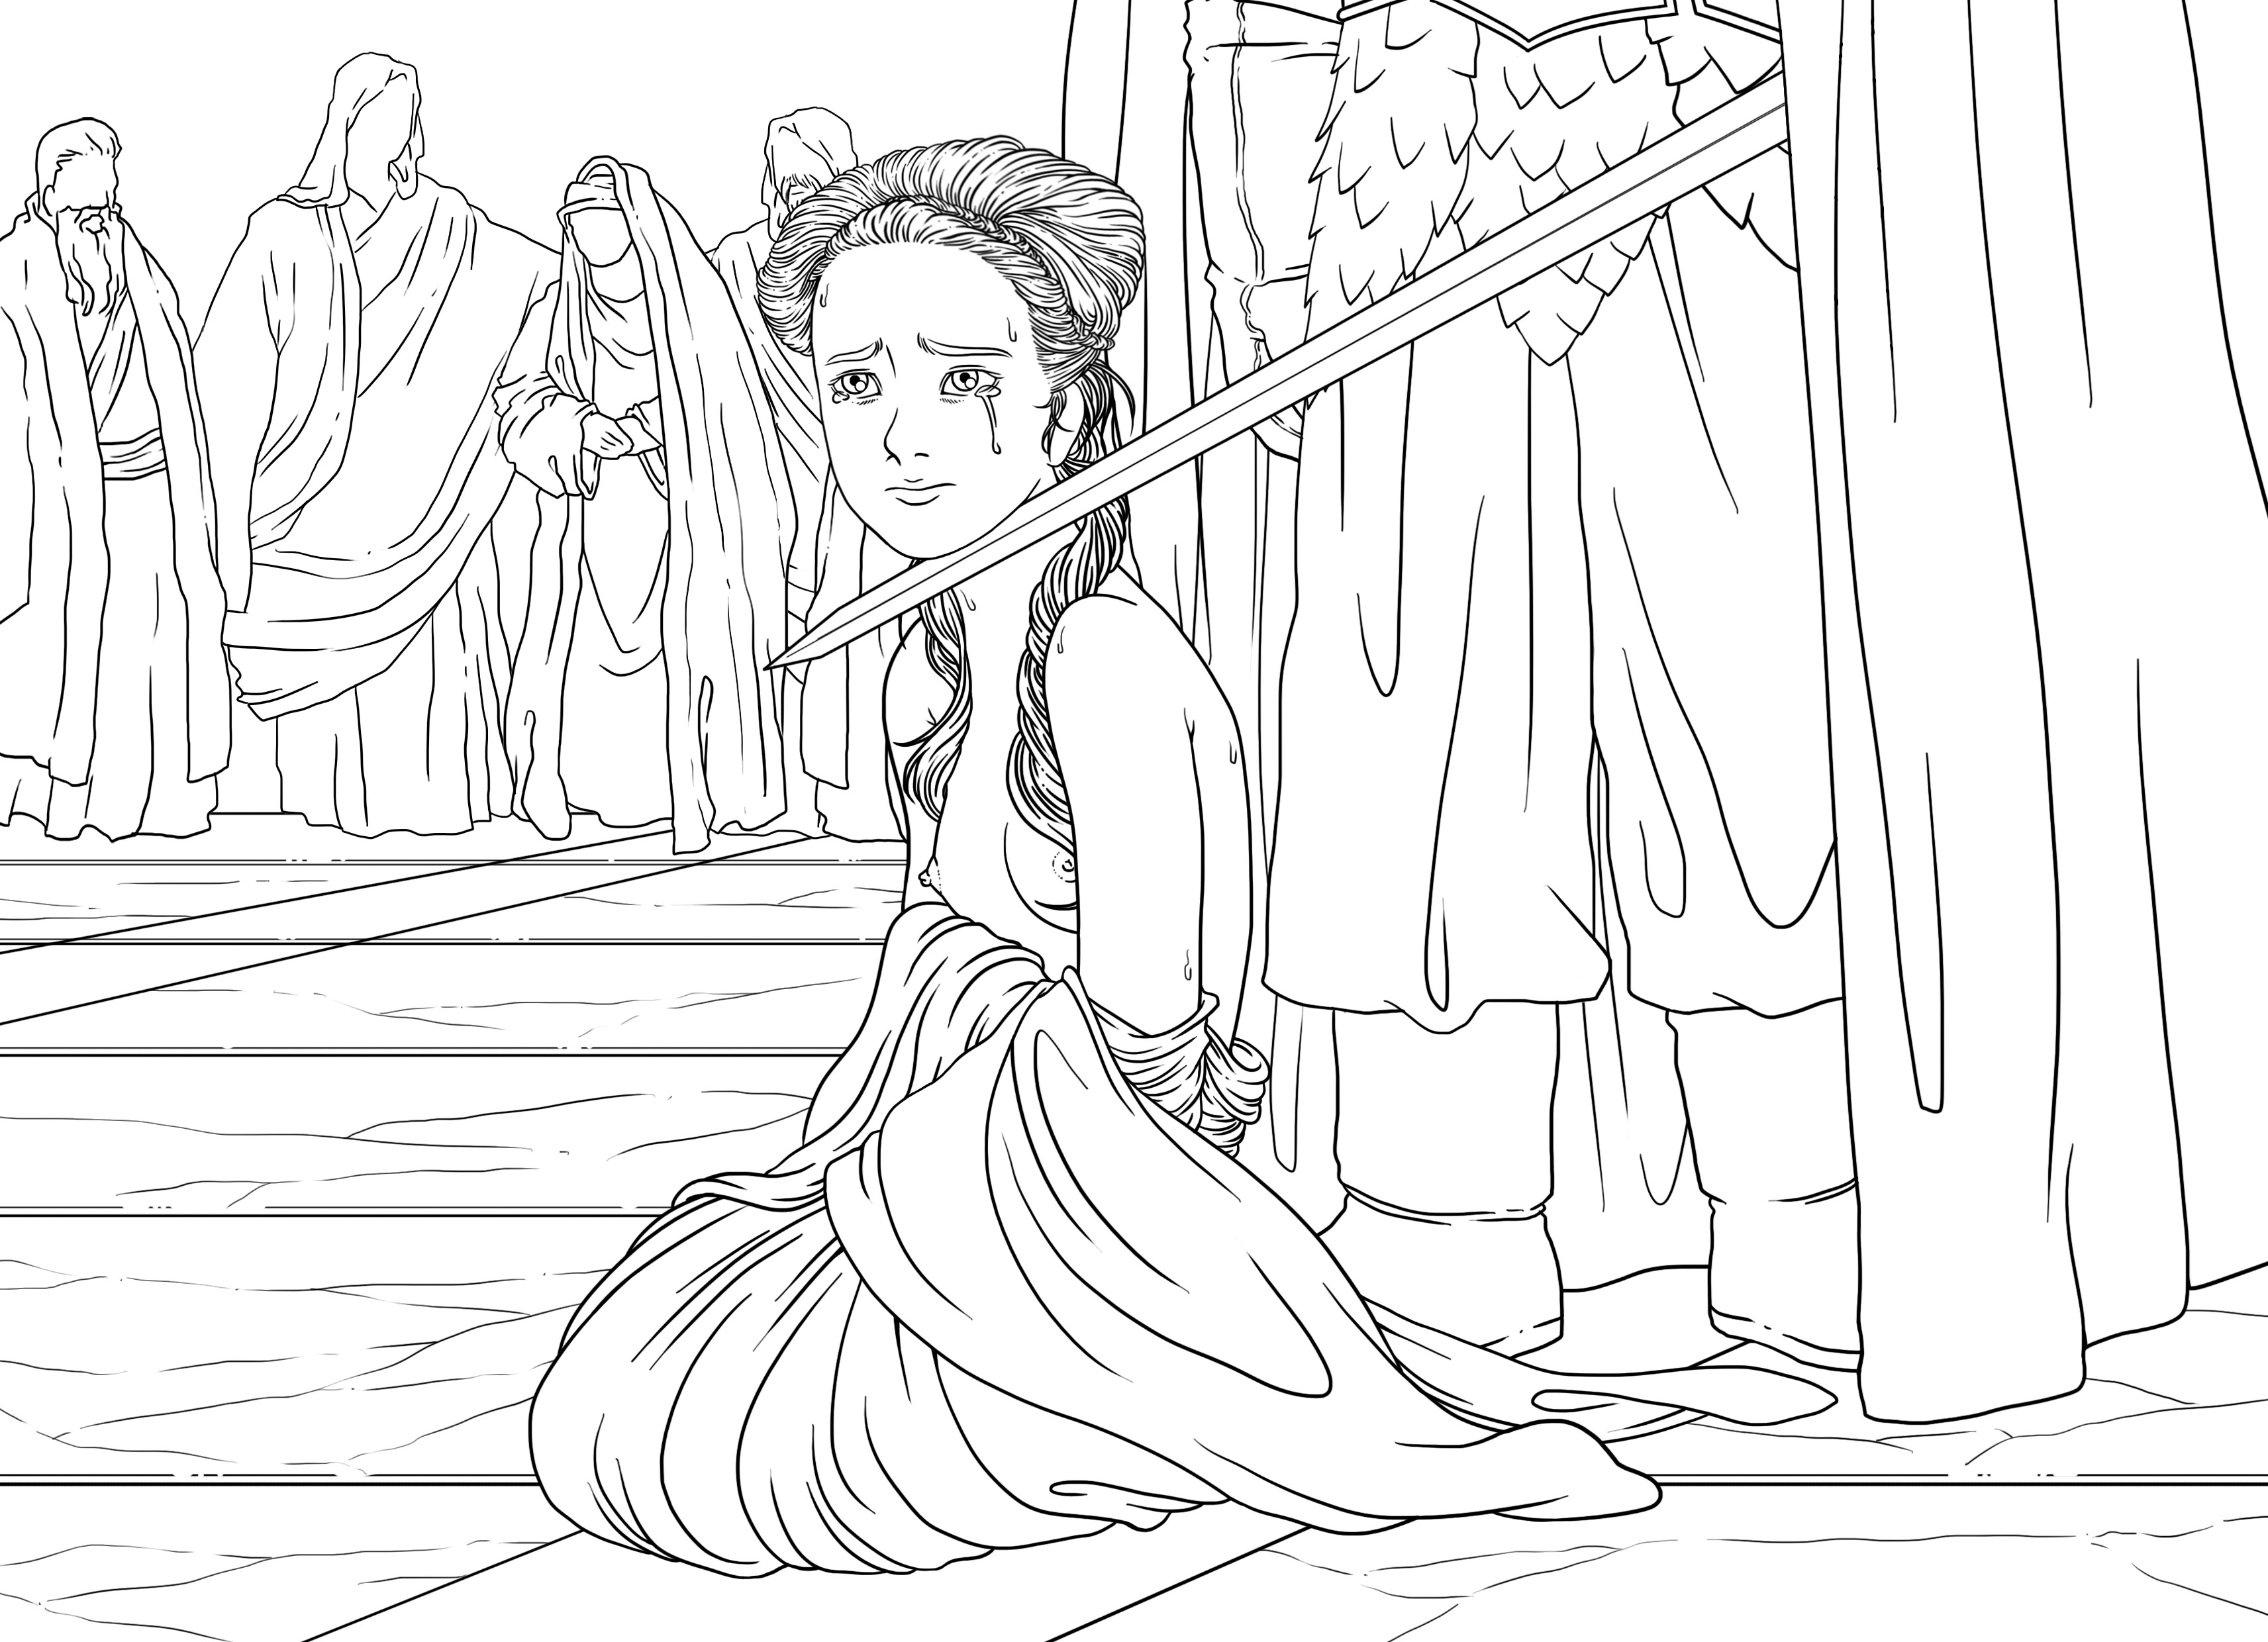 [Rayson] A Song of Ice and Fire – Sansa Stark (Game of Thrones)